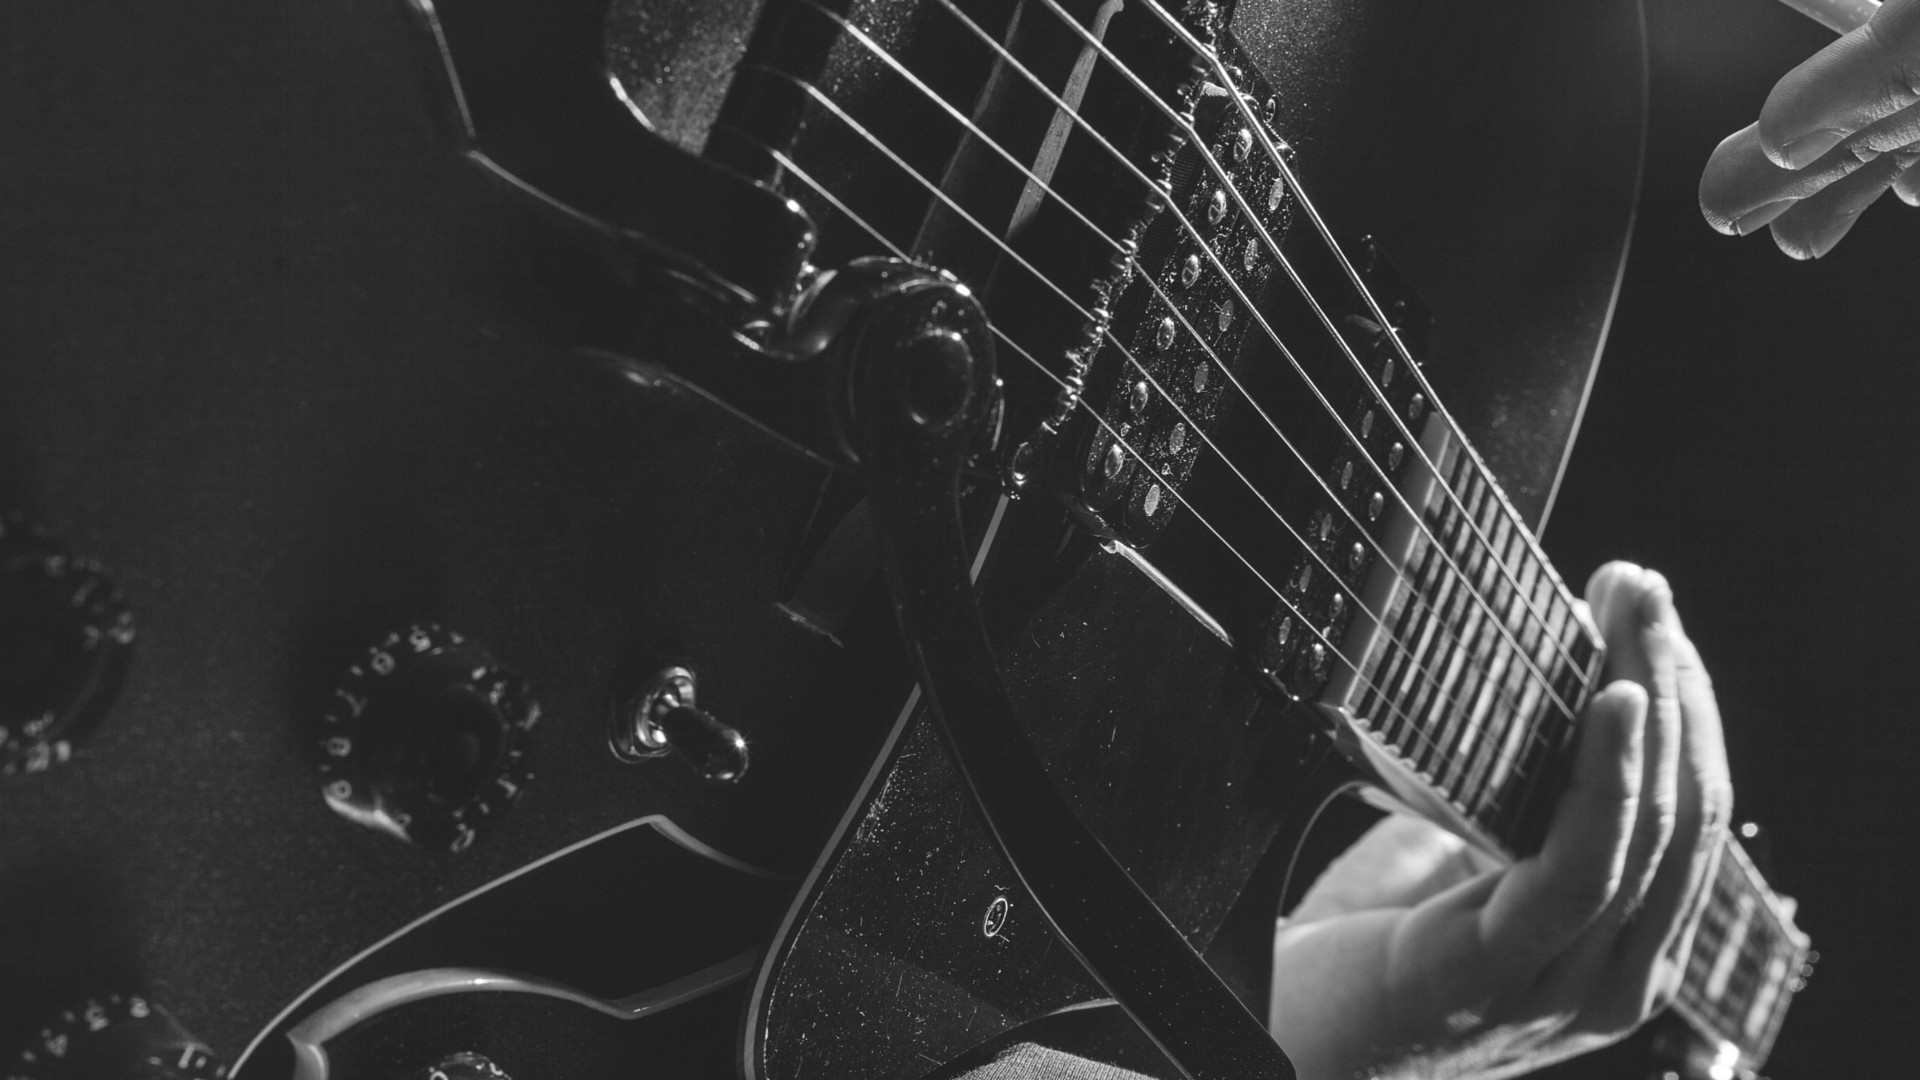 Music Guitar Wallpapers Hd Desktop And Mobile Backgrounds: Guitar Background ·① Download Free HD Wallpapers For